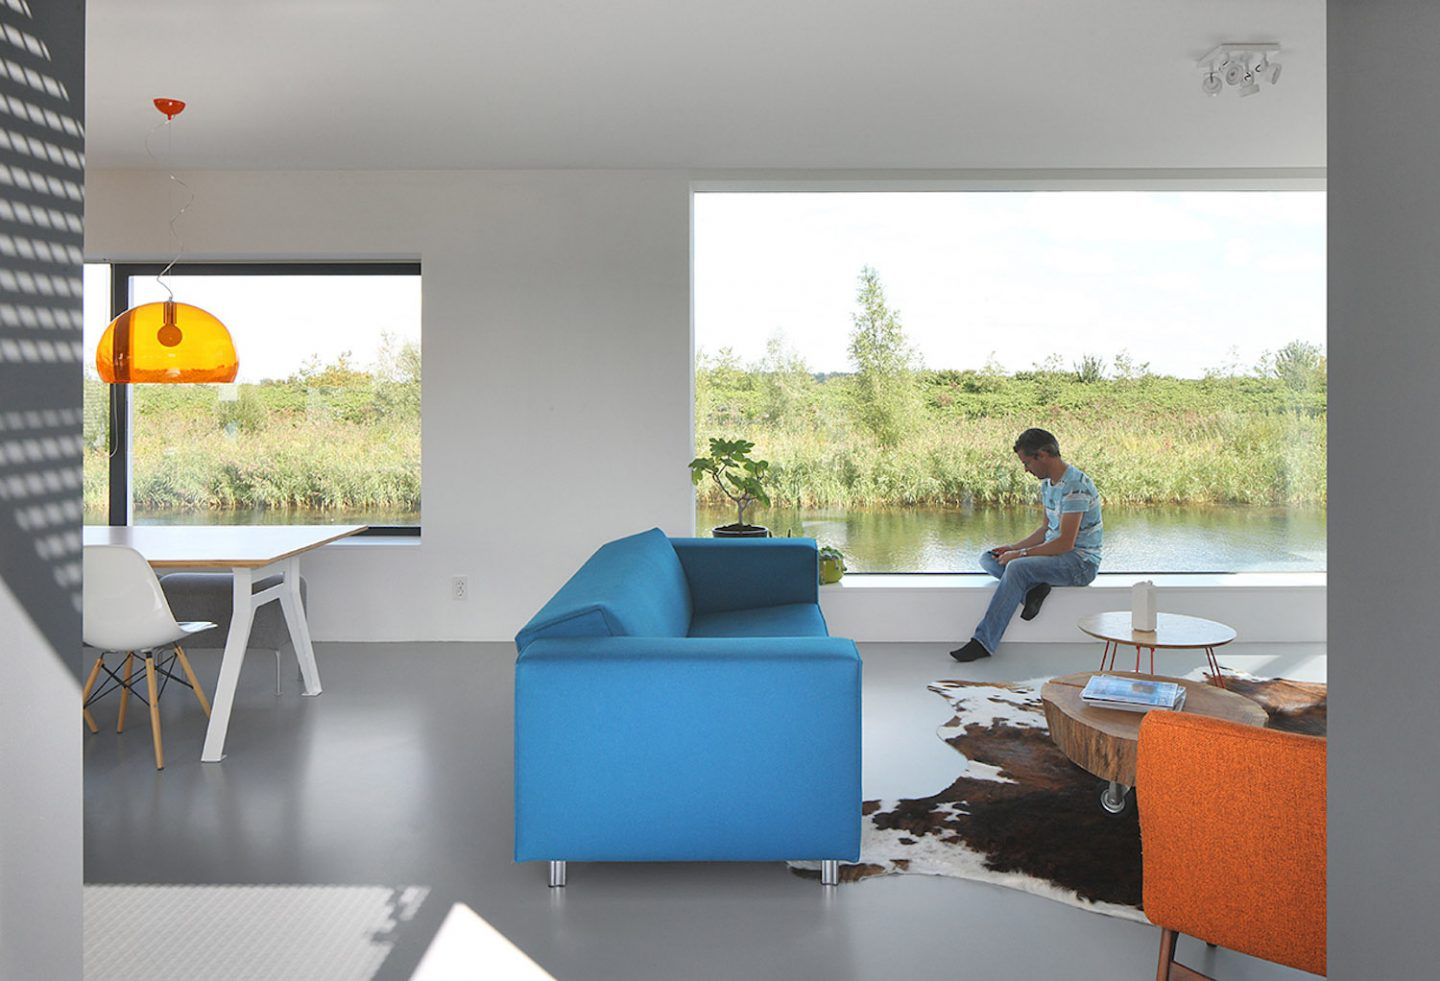 ignant_architecture_mka_woning_almere_small_06